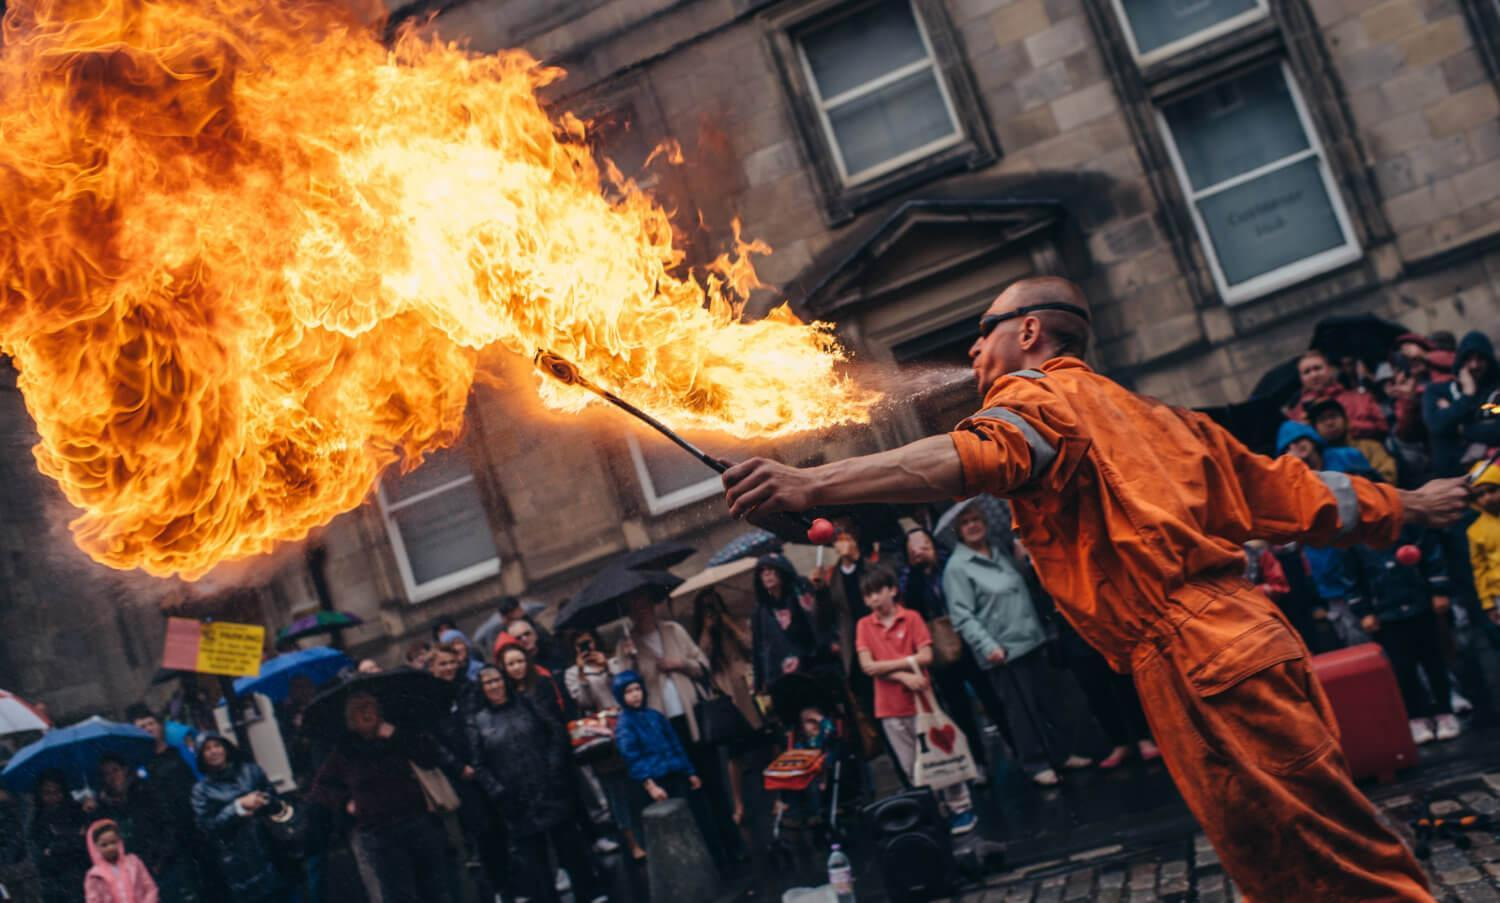 Street Performer at the Edinburgh Festival Fringe, Royal Mile